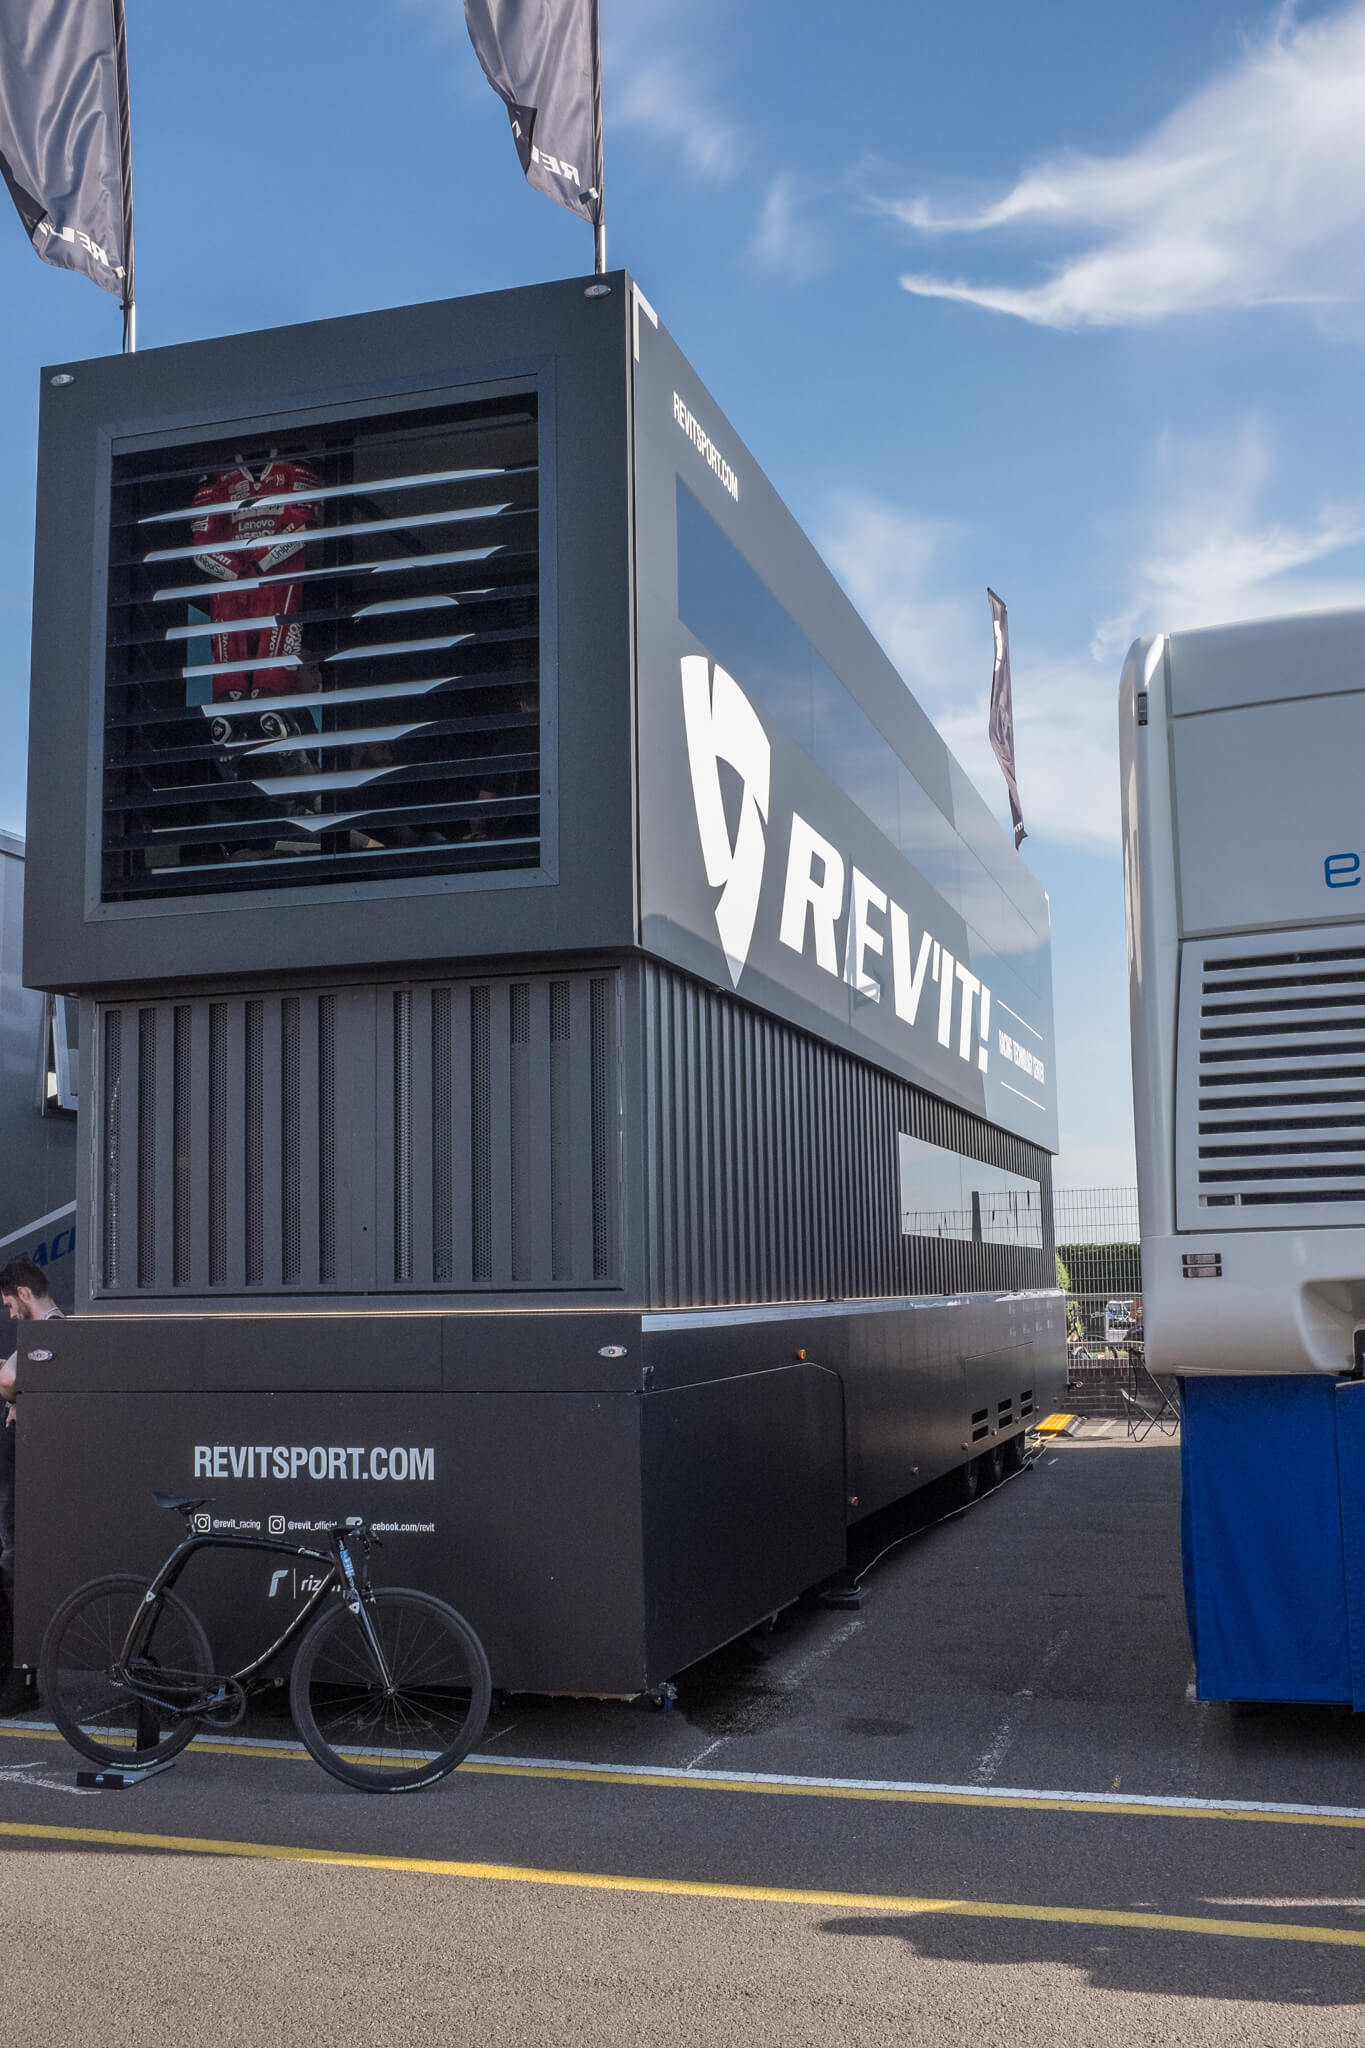 The REV'IT! Technology Center. Support facility during MotoGP